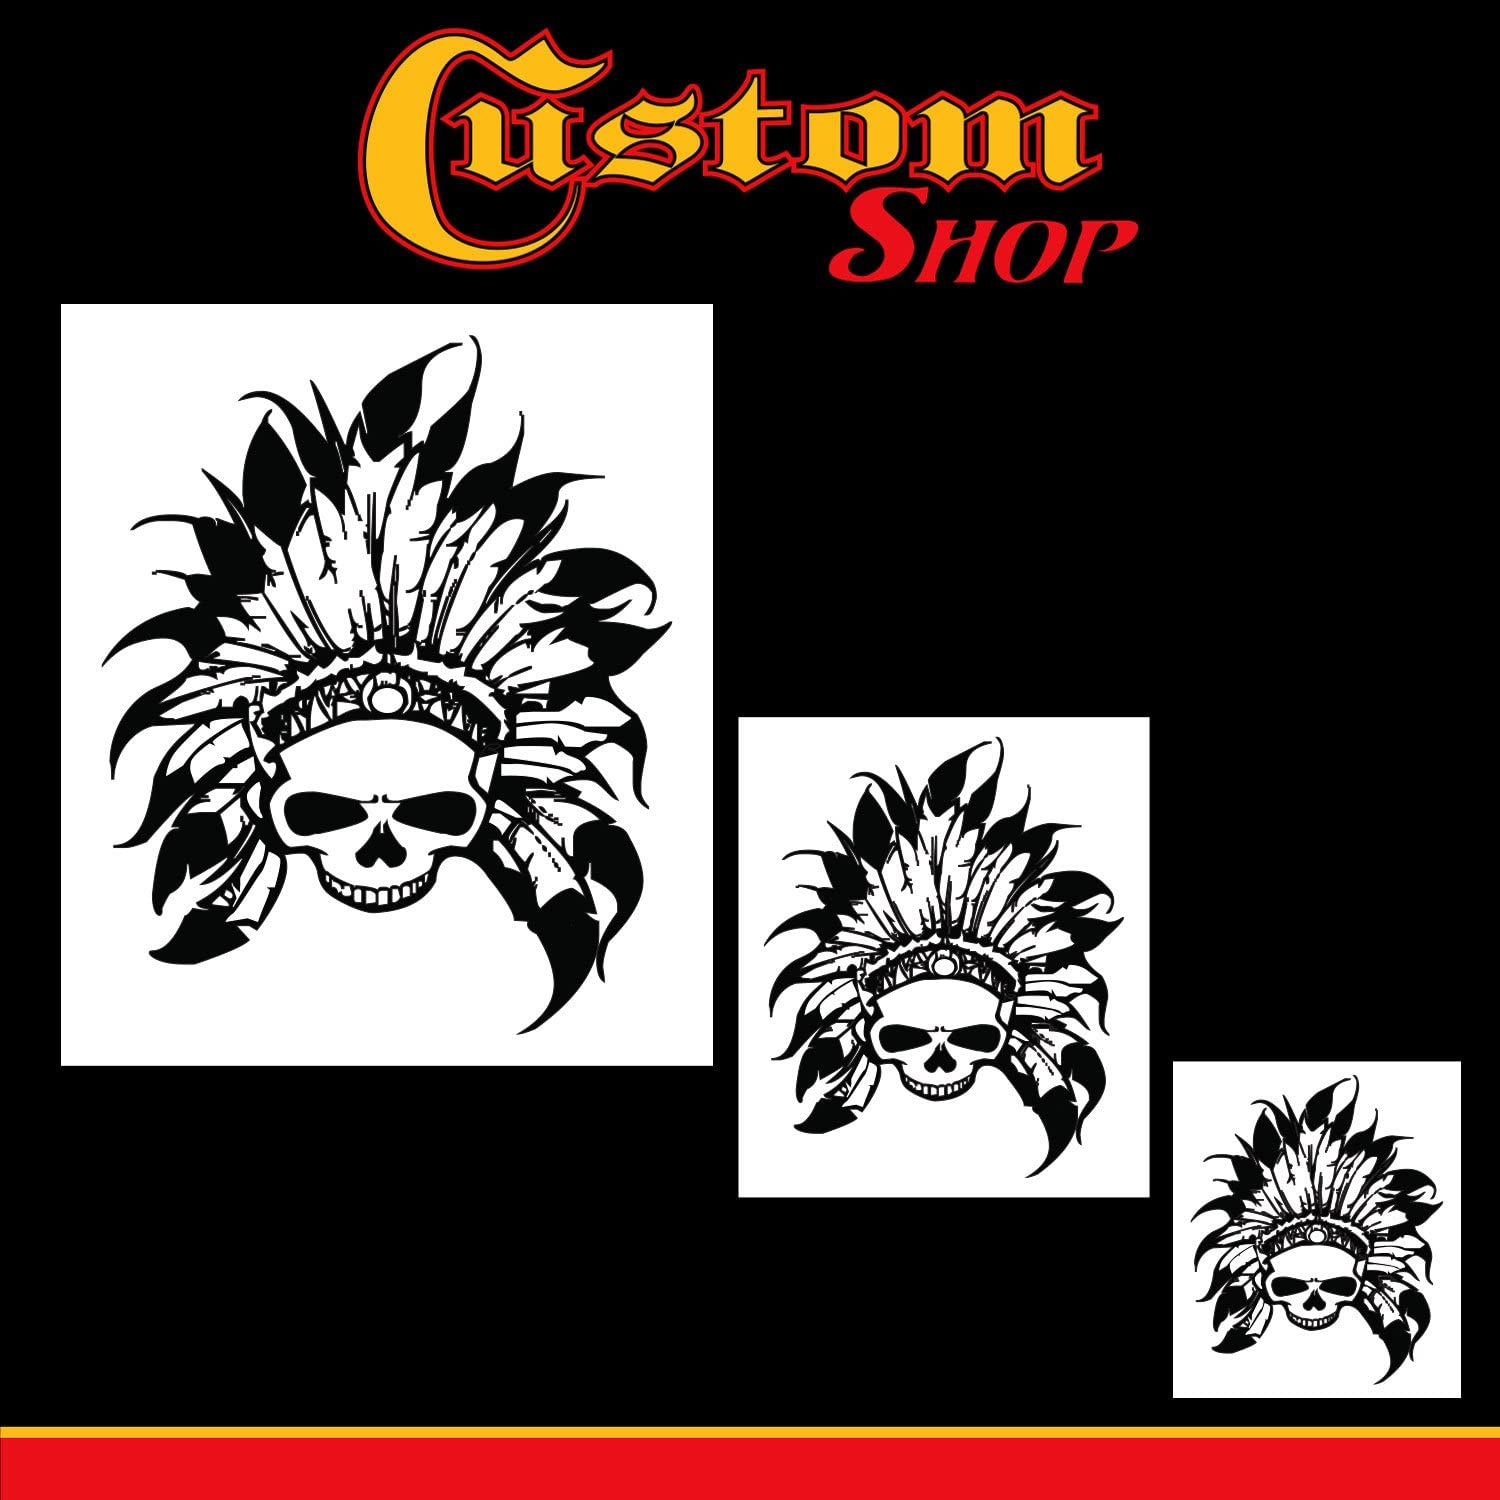 Custom Shop Airbrush Skeleton Skull Indian Chief Stencil Set (Skull Design #11 in 3 Scale Sizes) - Laser Cut Reusable Templates - Auto, Motorcycle Graphic Art